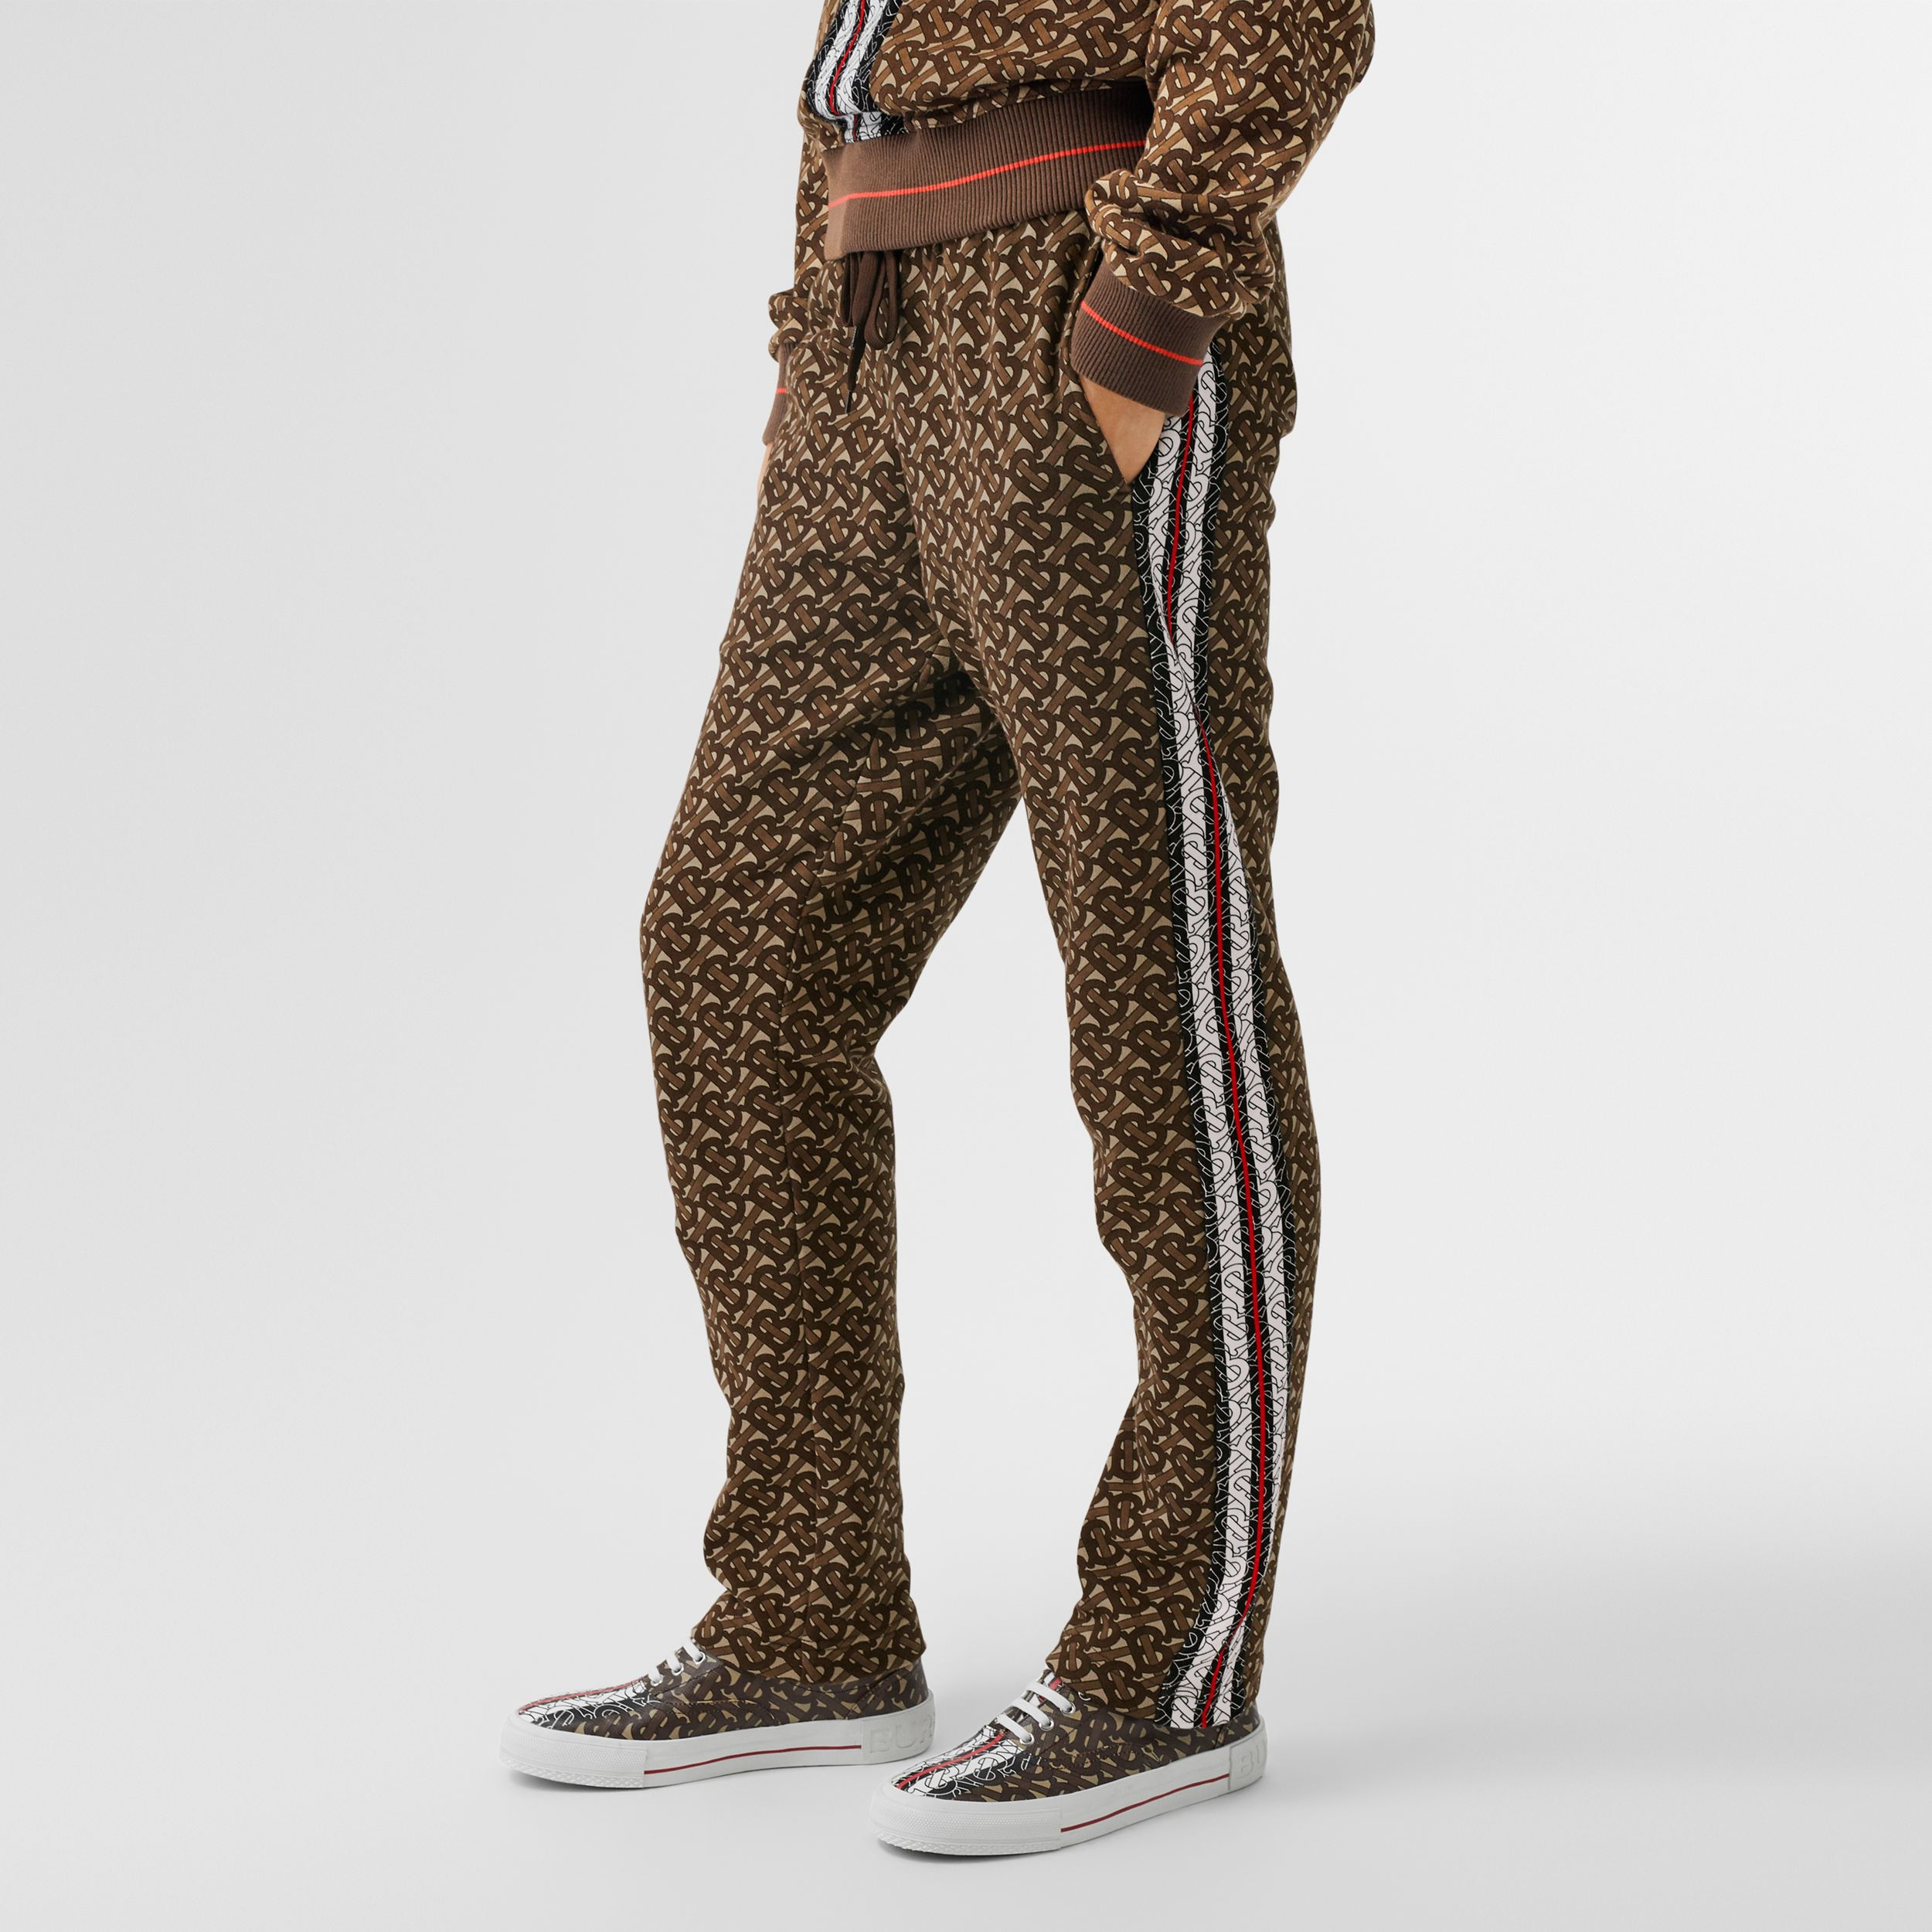 Monogram Stripe Print Cotton Jogging Pants in Bridle Brown - Women | Burberry Singapore - 1